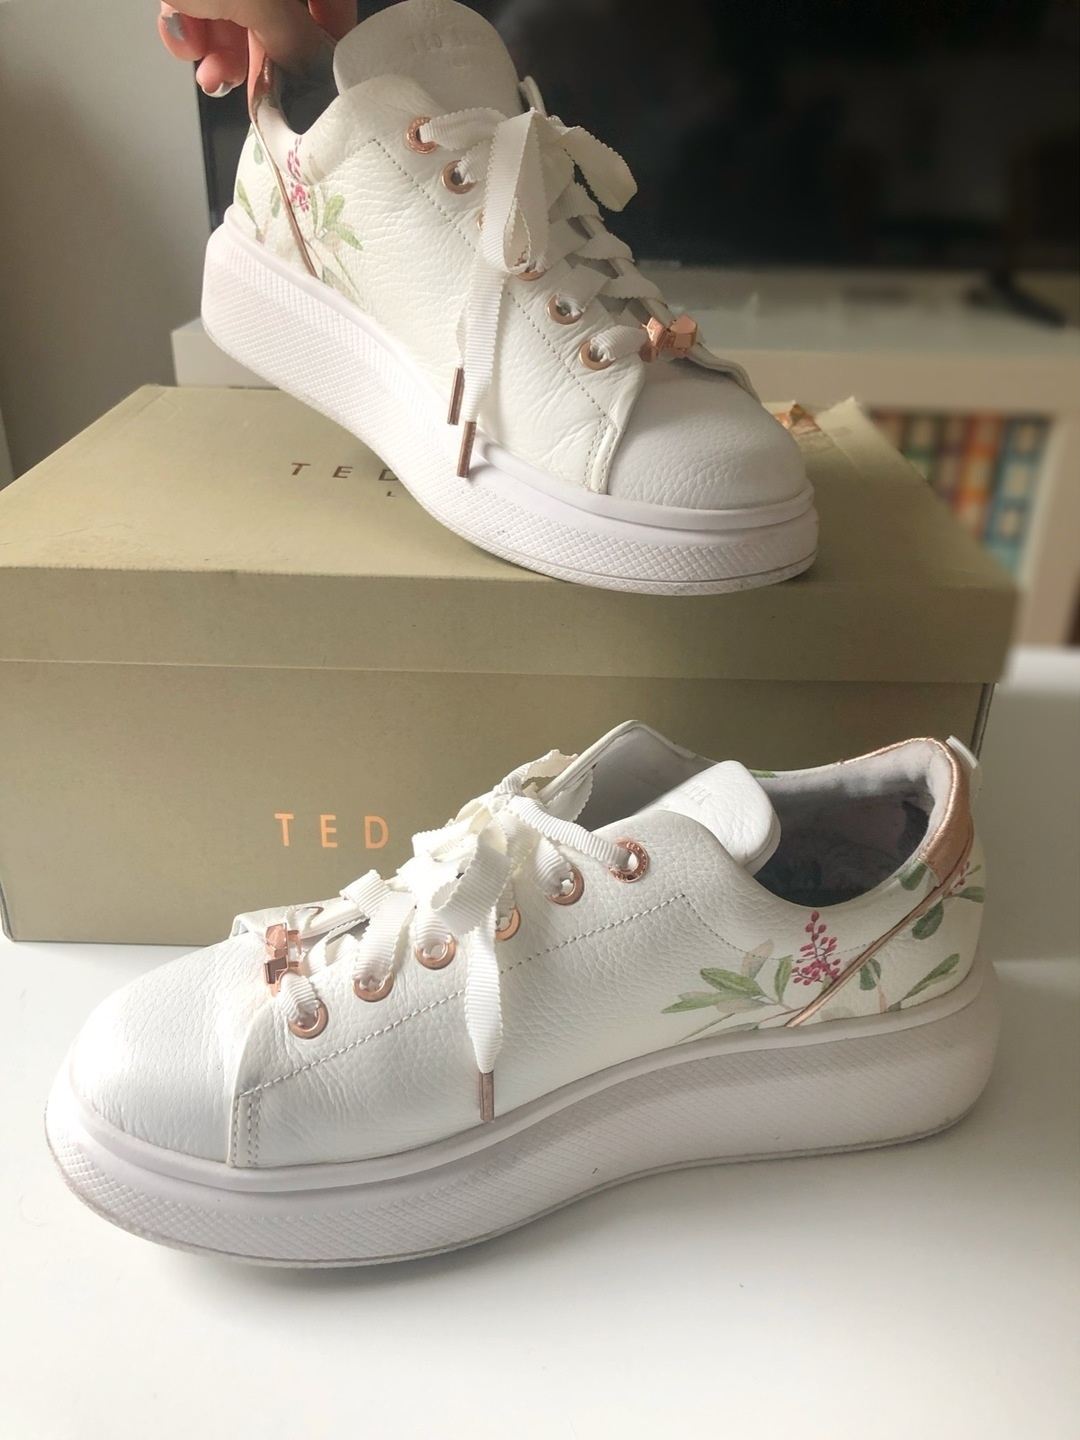 Women's sneakers - TED BAKER photo 2